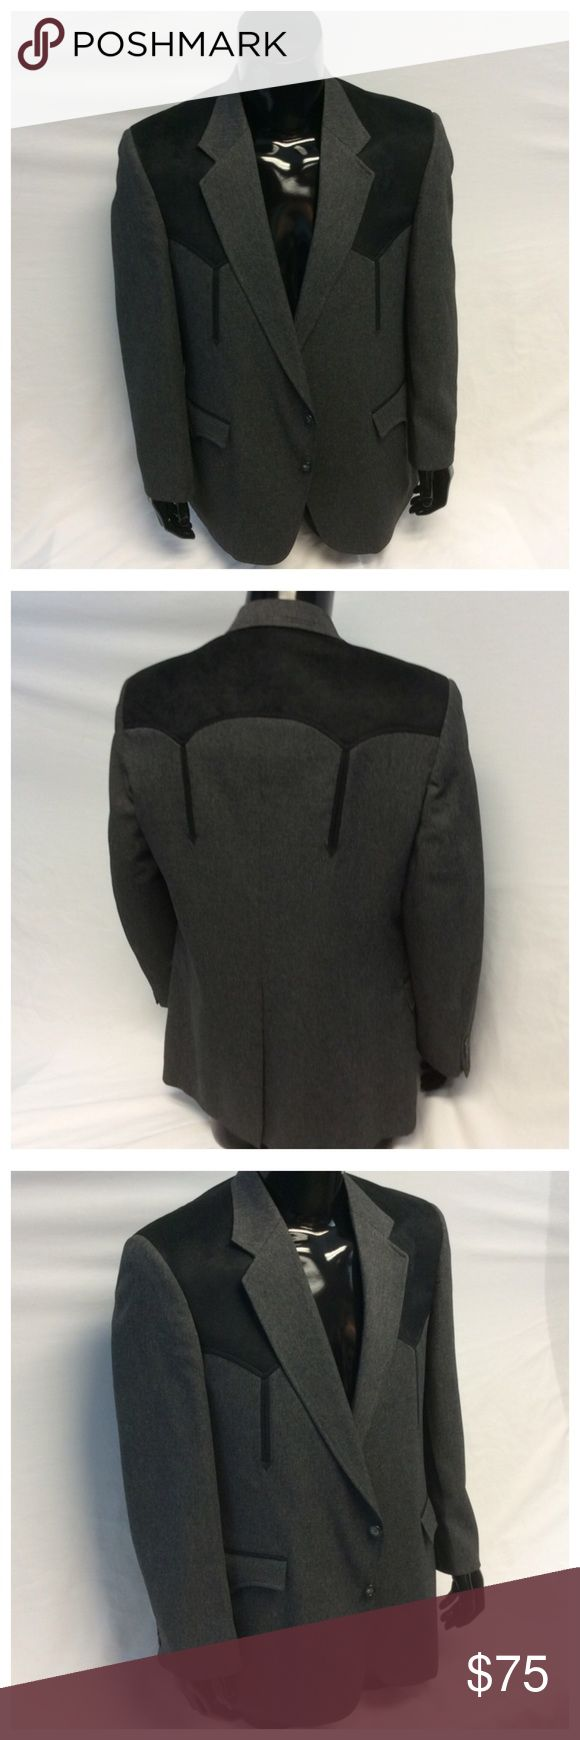 """CIRCLE S MENS BLACK SUIT JACKET CIRCLE S MENS BLACK WESTERN STYLE SUIT JACKET, Size 44R, 100% polyester, lining is 100% acetate, dry clean. Approximate measurements are 18 1/2"""" shoulder seam to shoulder seam, 23"""" arm pit to arm pit, 31"""" shoulder to hem, 24 1/2"""" sleeve from shoulder to end of sleeve, 10 1/2"""" slit. M012 Circle S Suits & Blazers"""